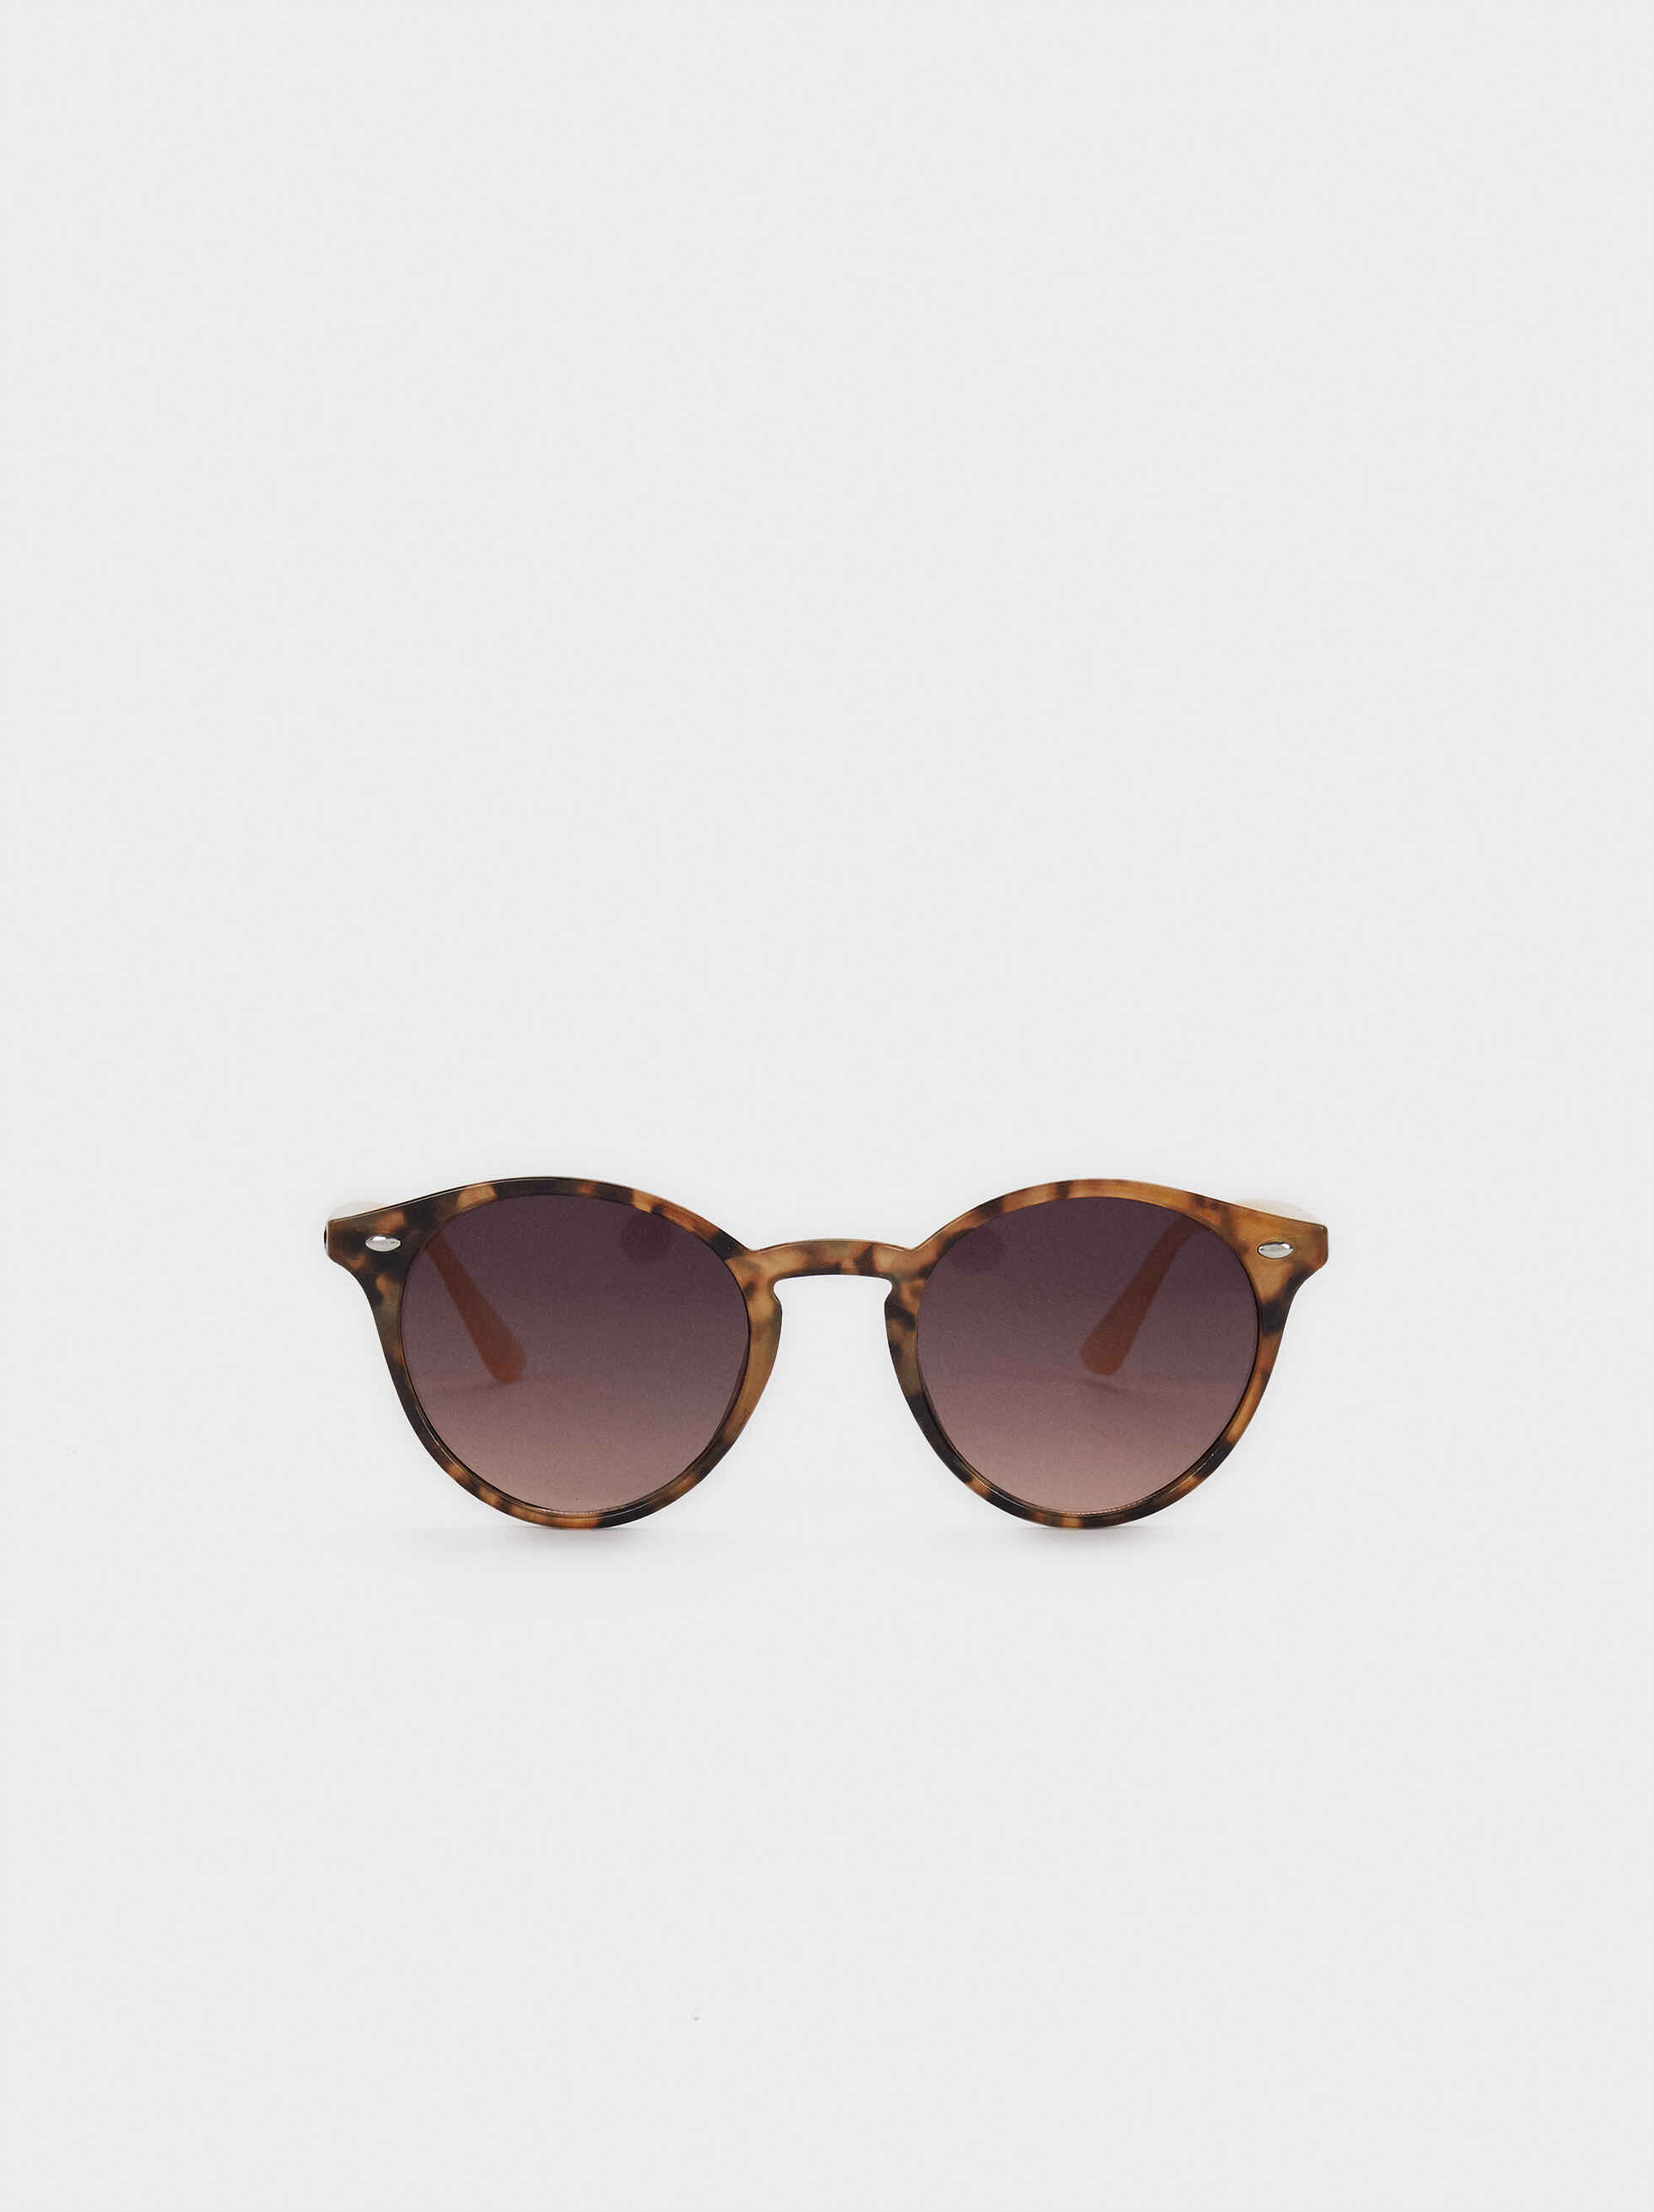 Sunglasses With Round Plastic Frames, Brown, hi-res